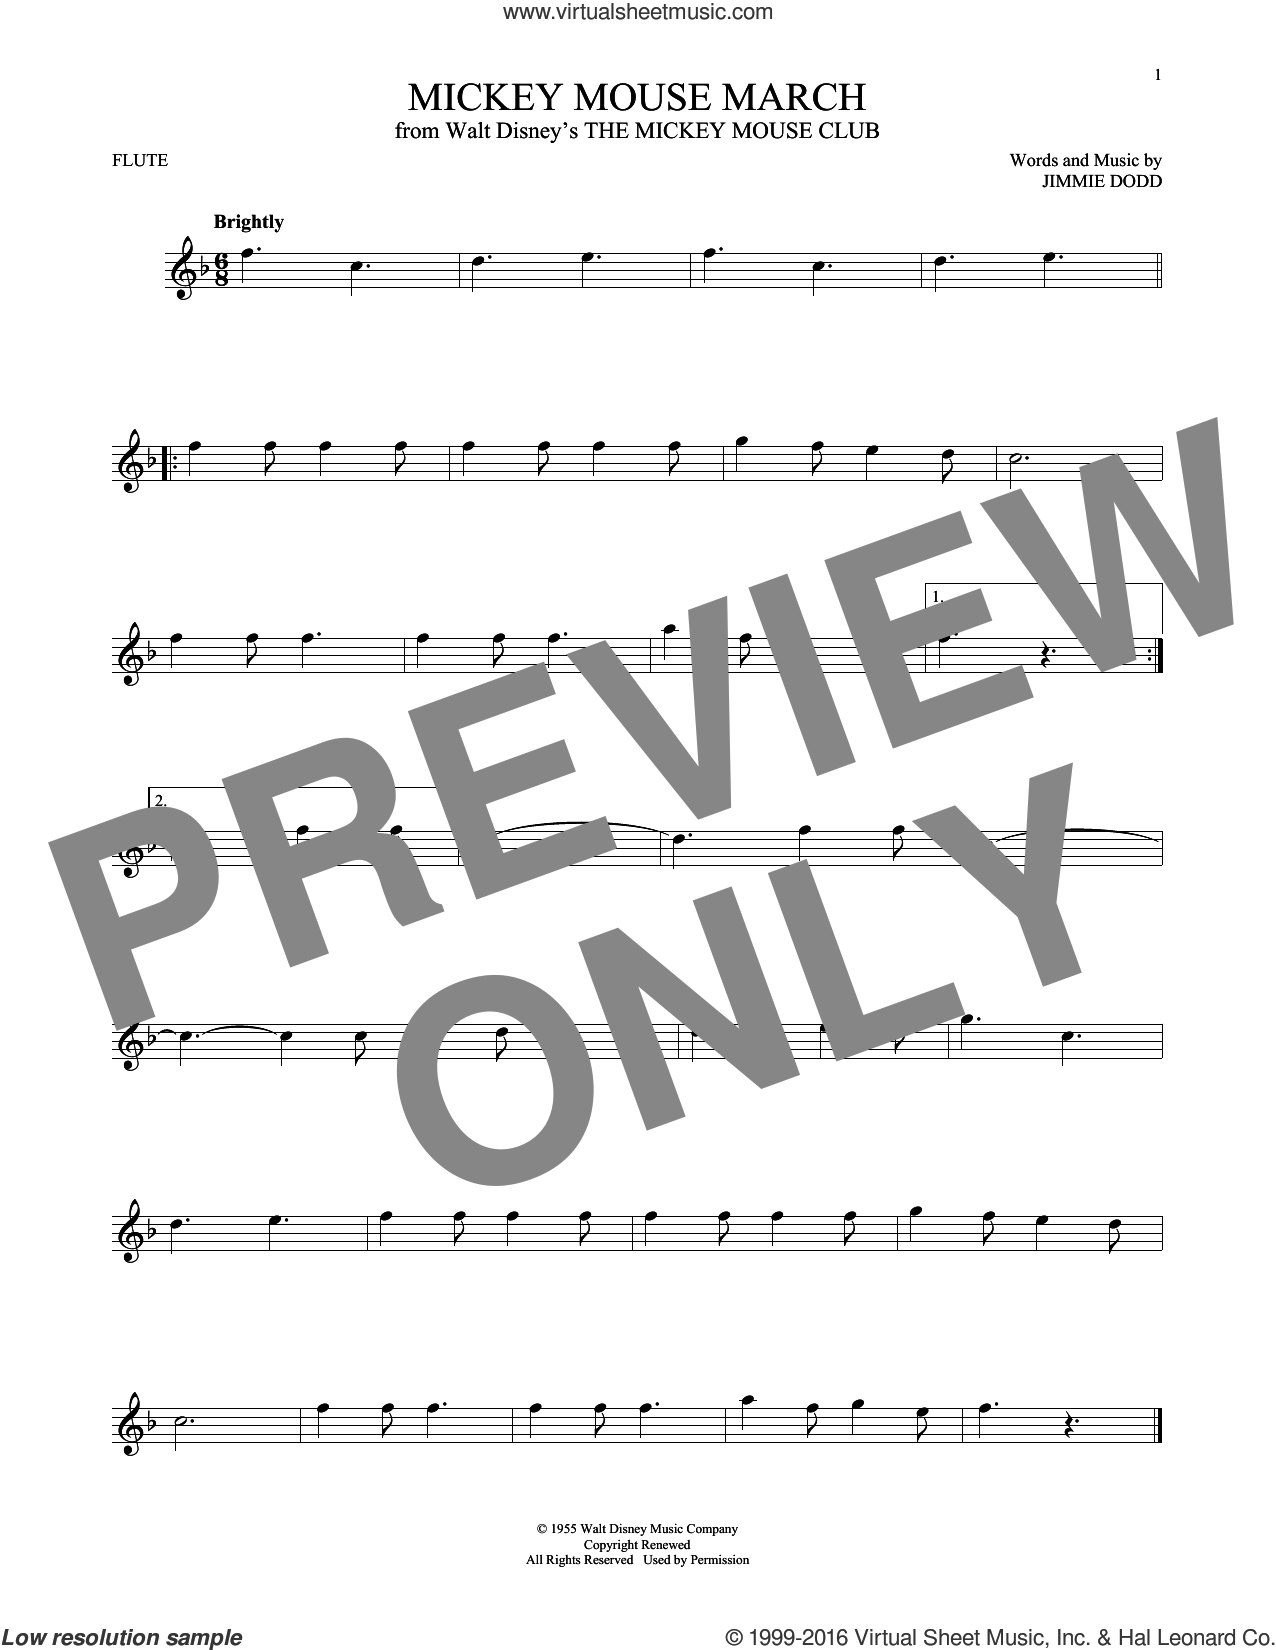 Mickey Mouse March sheet music for flute solo by Jimmie Dodd, intermediate